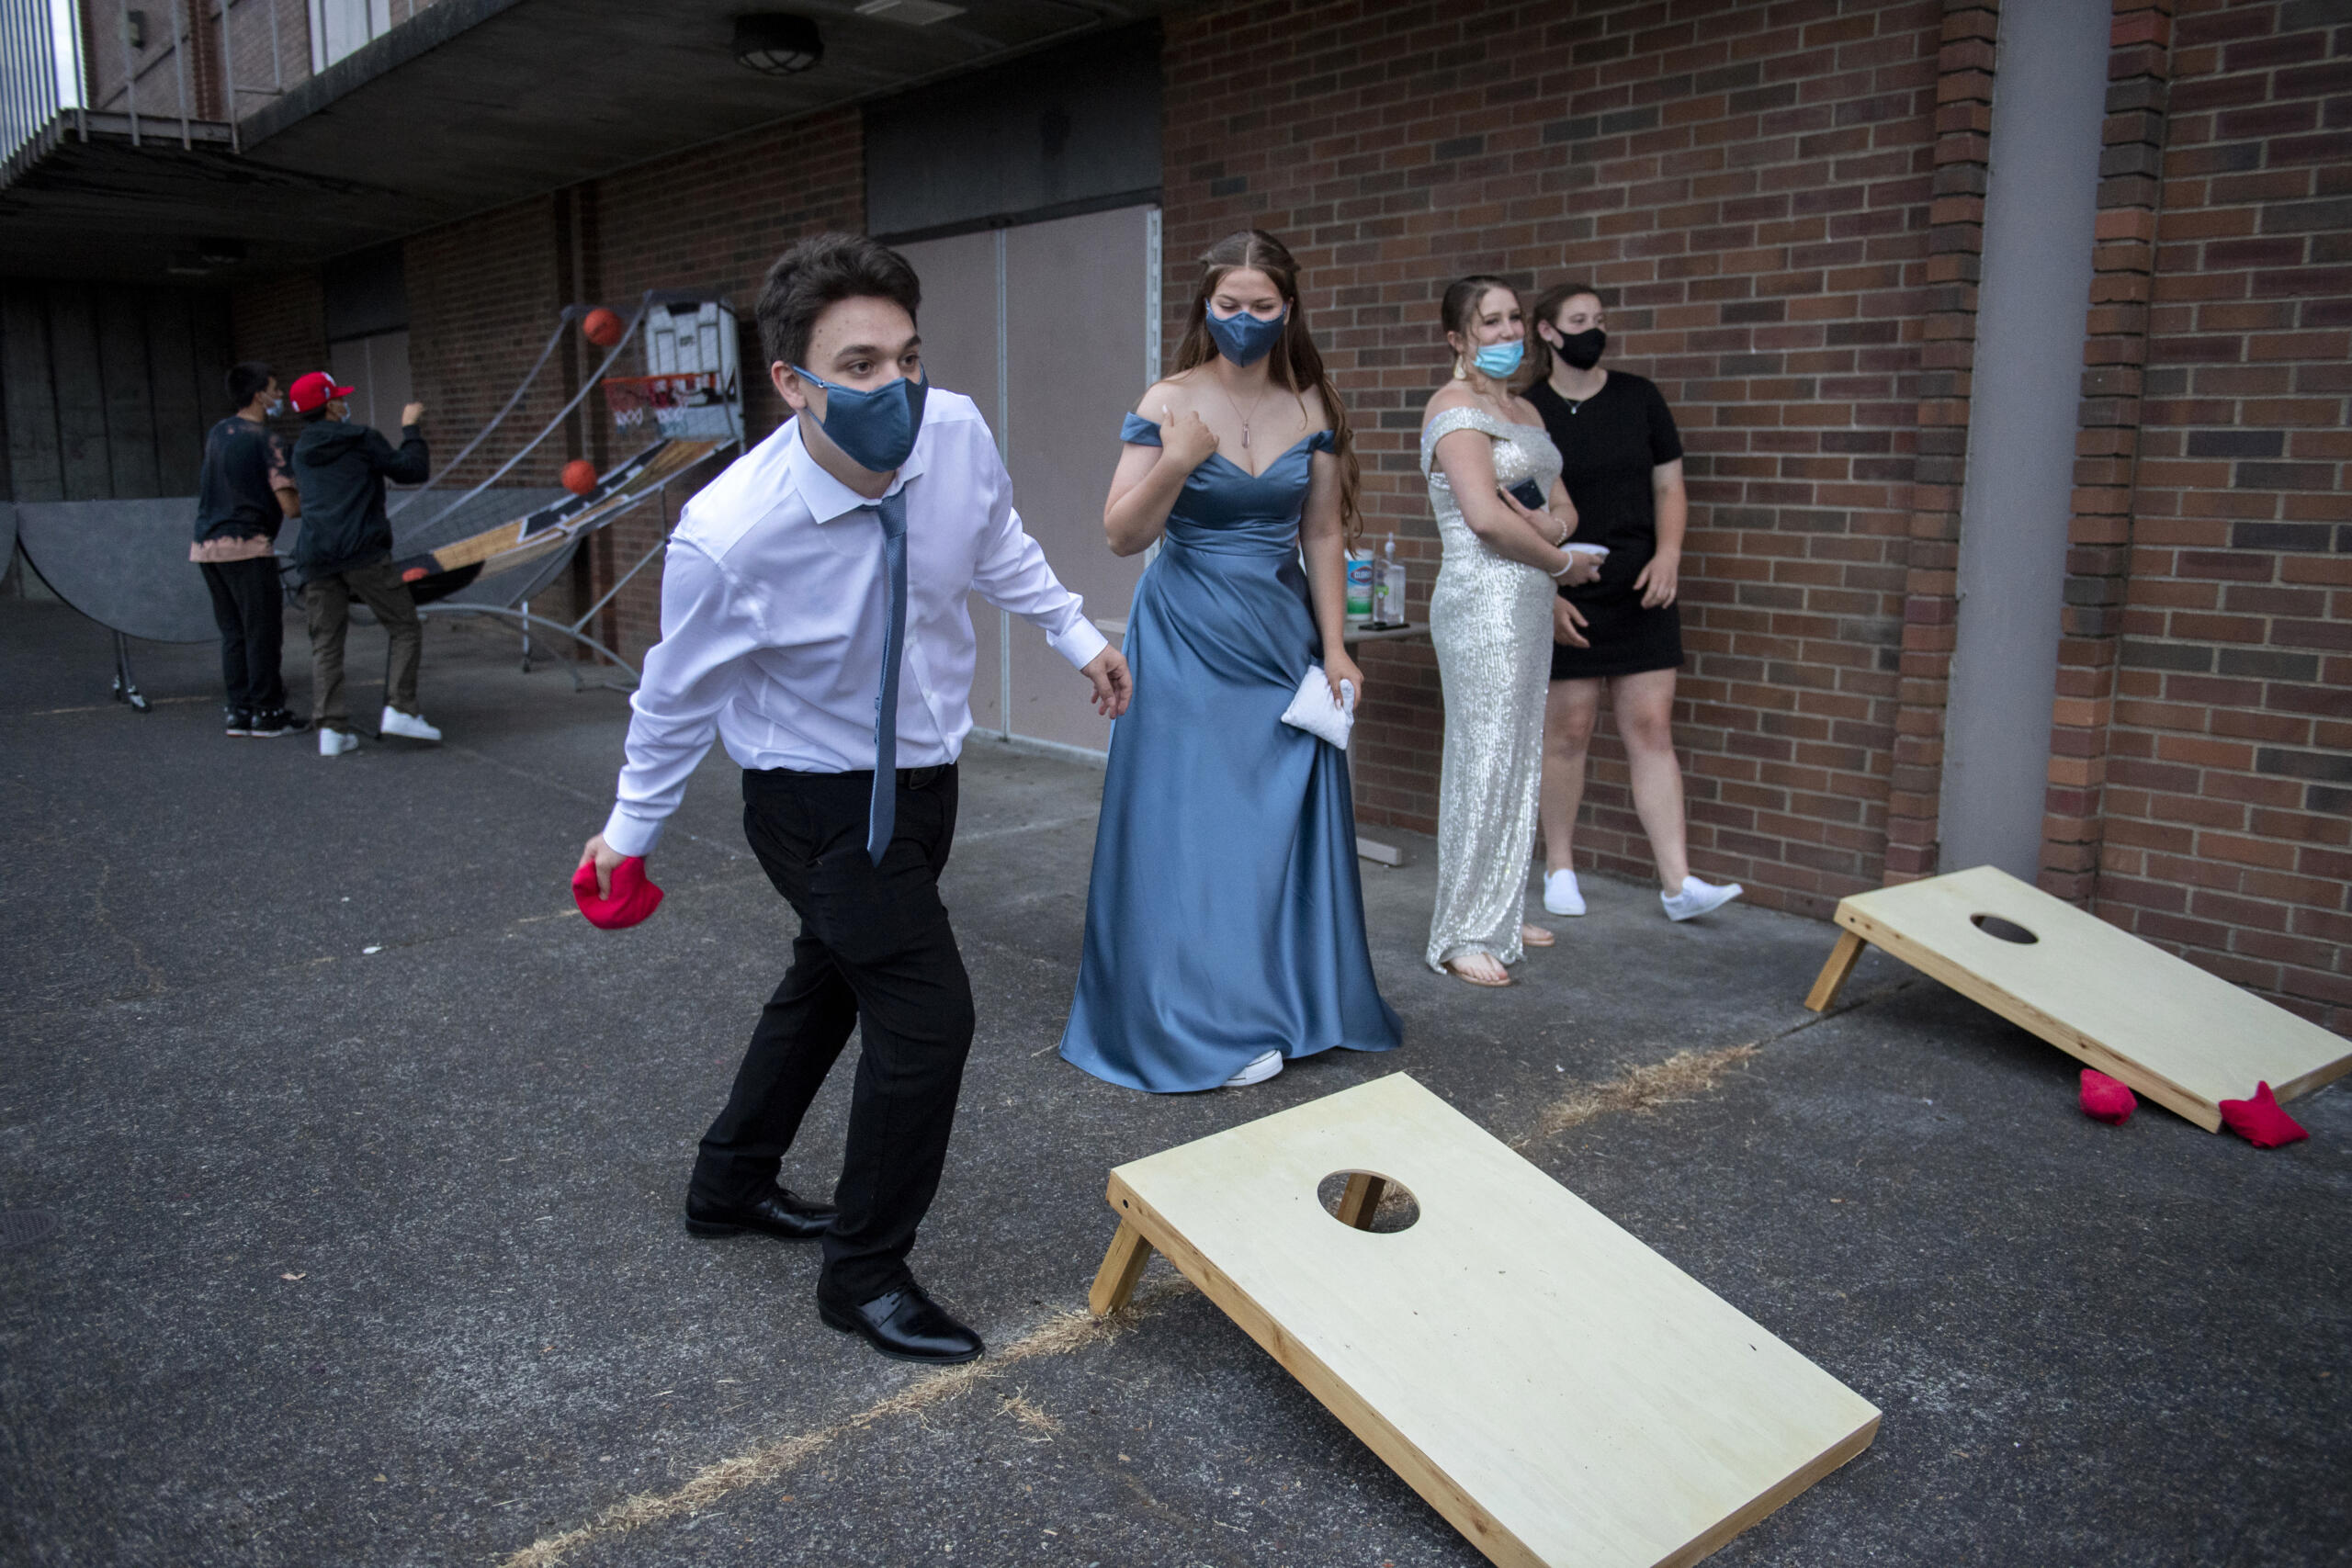 Junior Chris Boone, 18, left, takes aim while playing cornhole with fellow junior Emma Garrett, 16, outside the gym at Fort Vancouver High School on May 22. The games were part of the outdoor entertainment option for students at the unique prom, not only to offer activities as a secondary option, but also a safe outside alternative in case students didn't feel comfortable indoors as the COVID-19 pandemic continues.